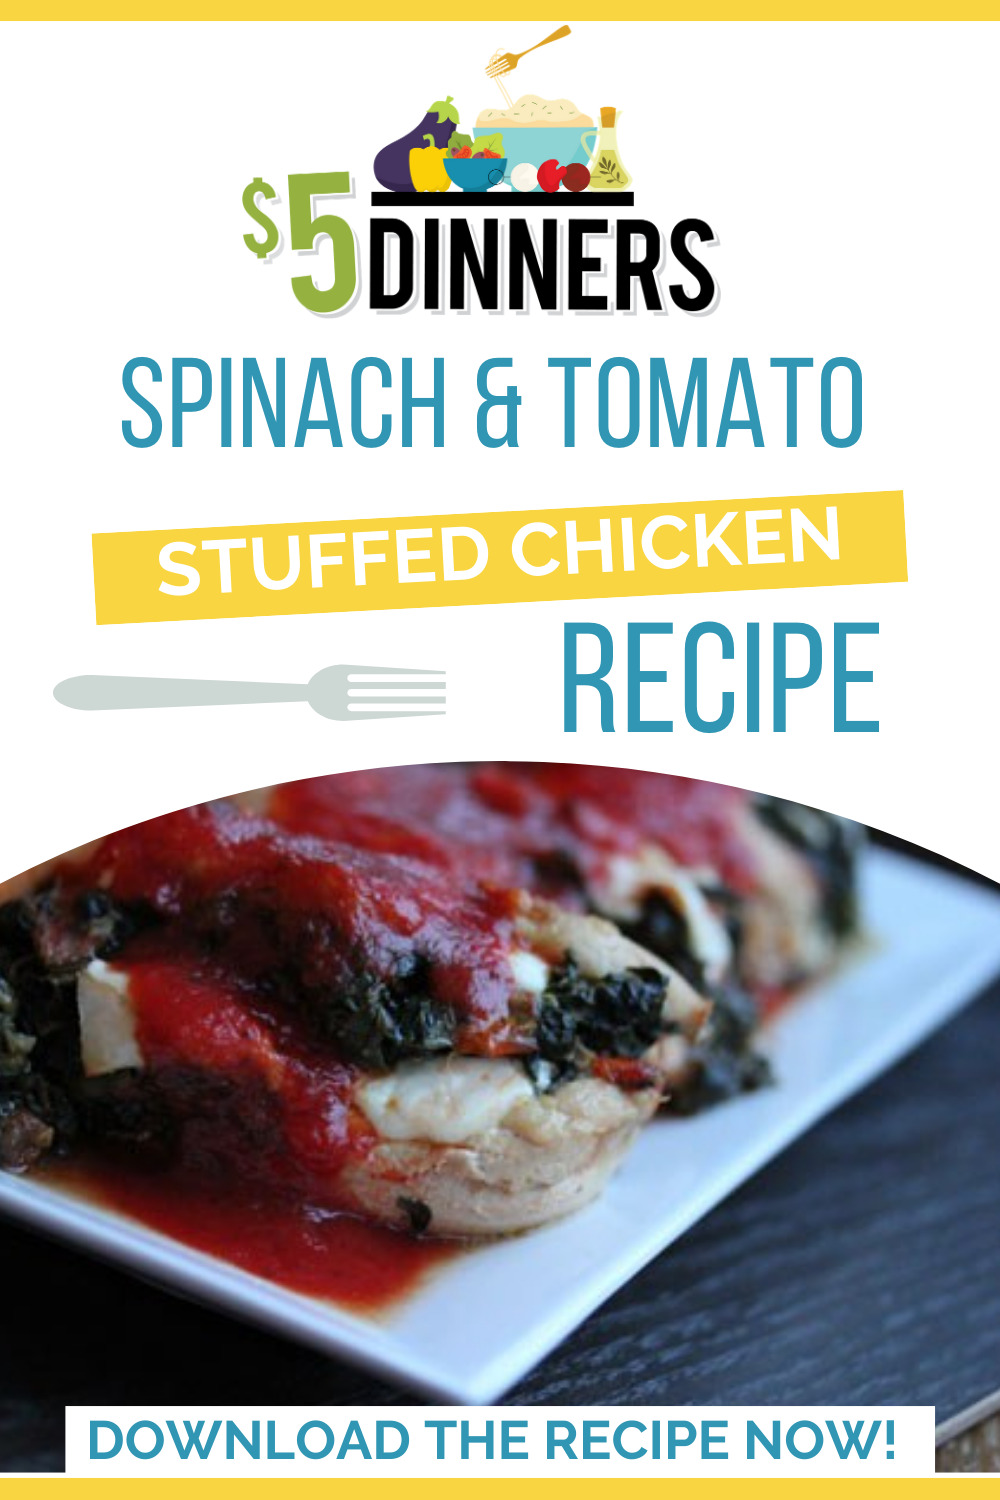 spinach and tomato stuffed chicken